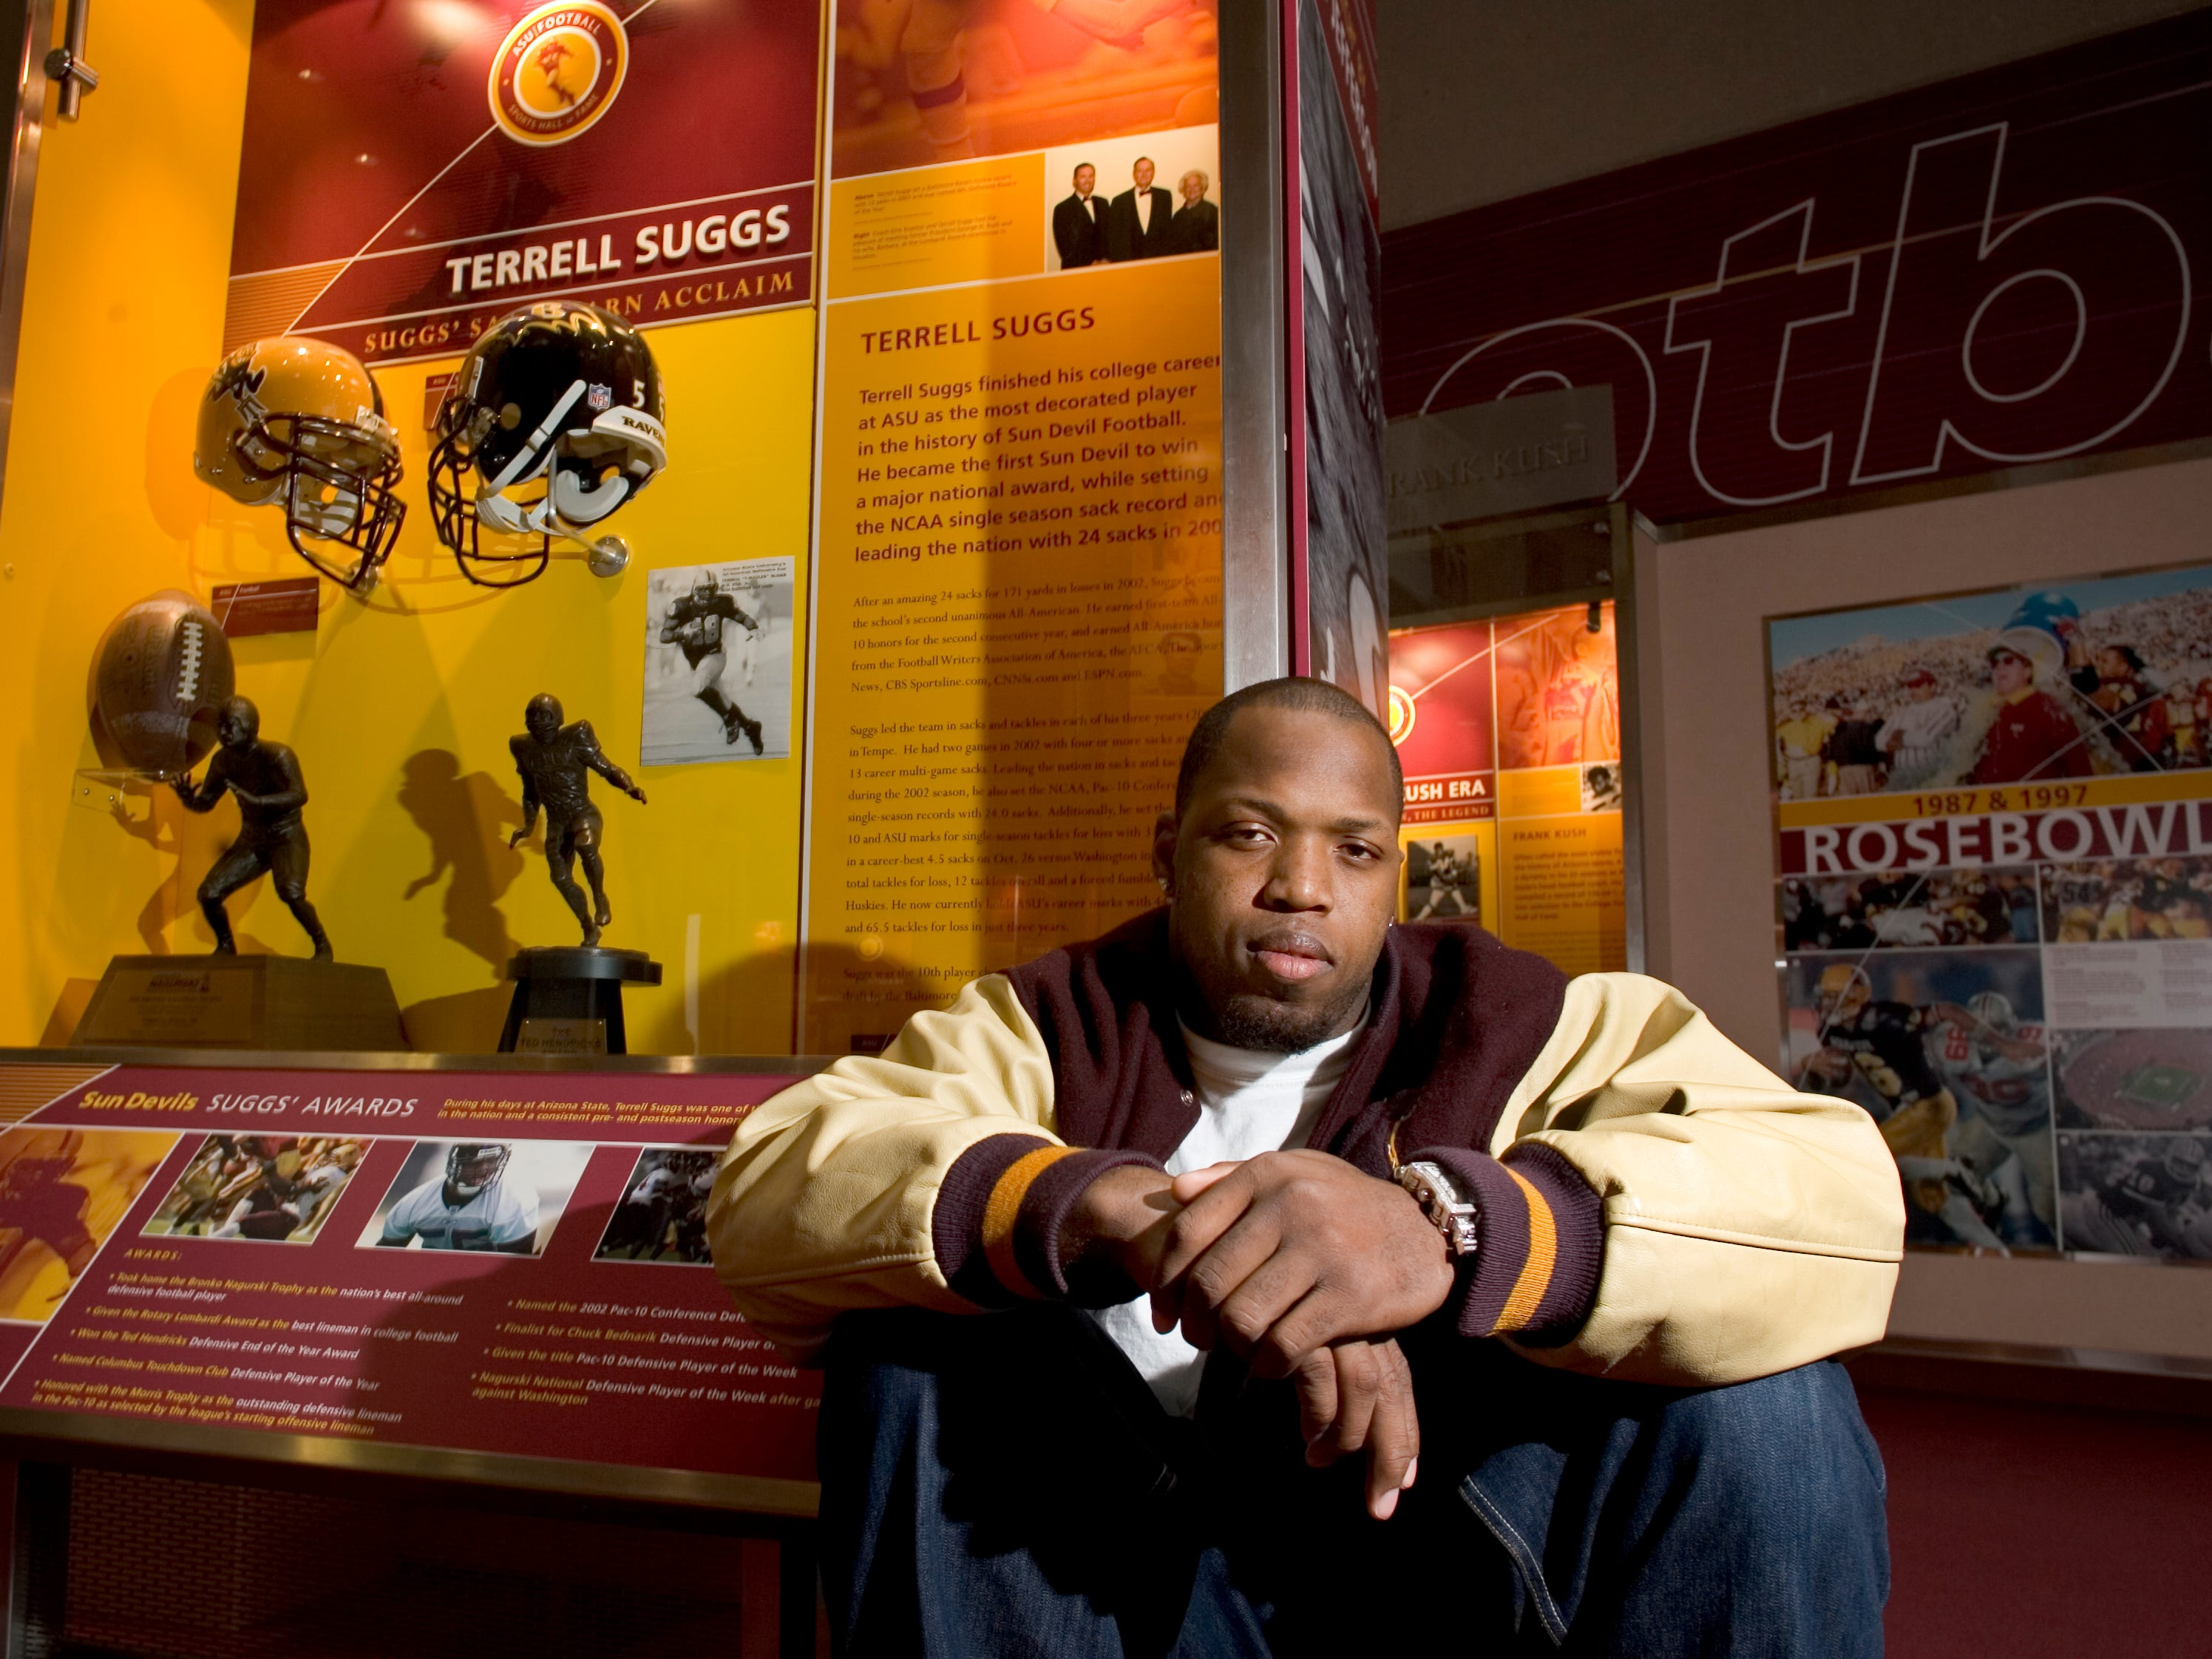 Portrait of Terrell Suggs in front of his display at the ASU Athletic Hall of Fame.